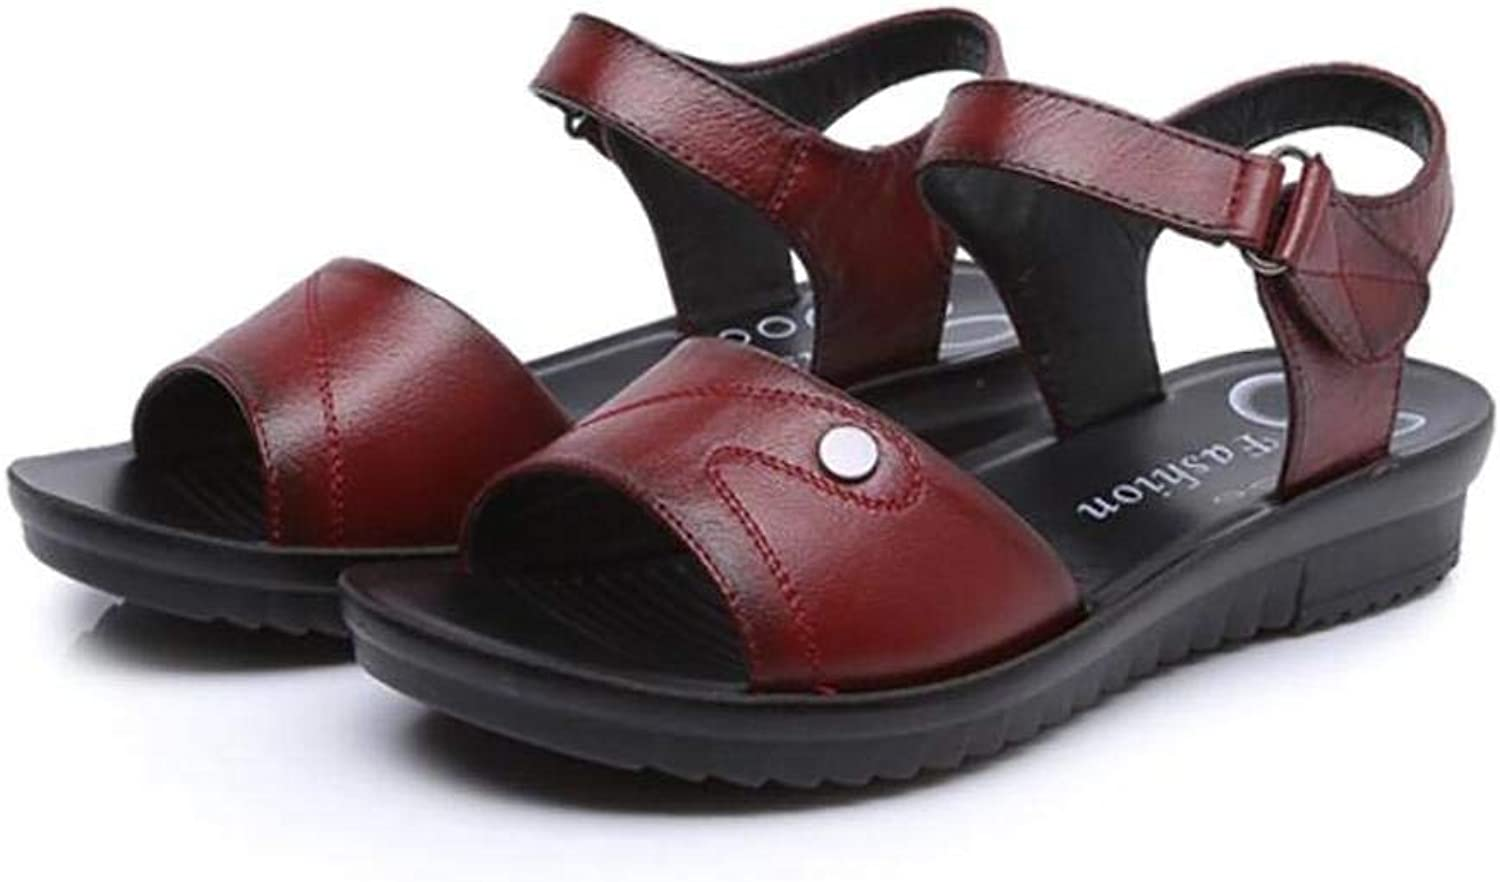 JaHGDU Women Summer Leather Flat Sandals Non Slip Large Casual Wear Middle Aged Mother shoes for Women Red Black Brown